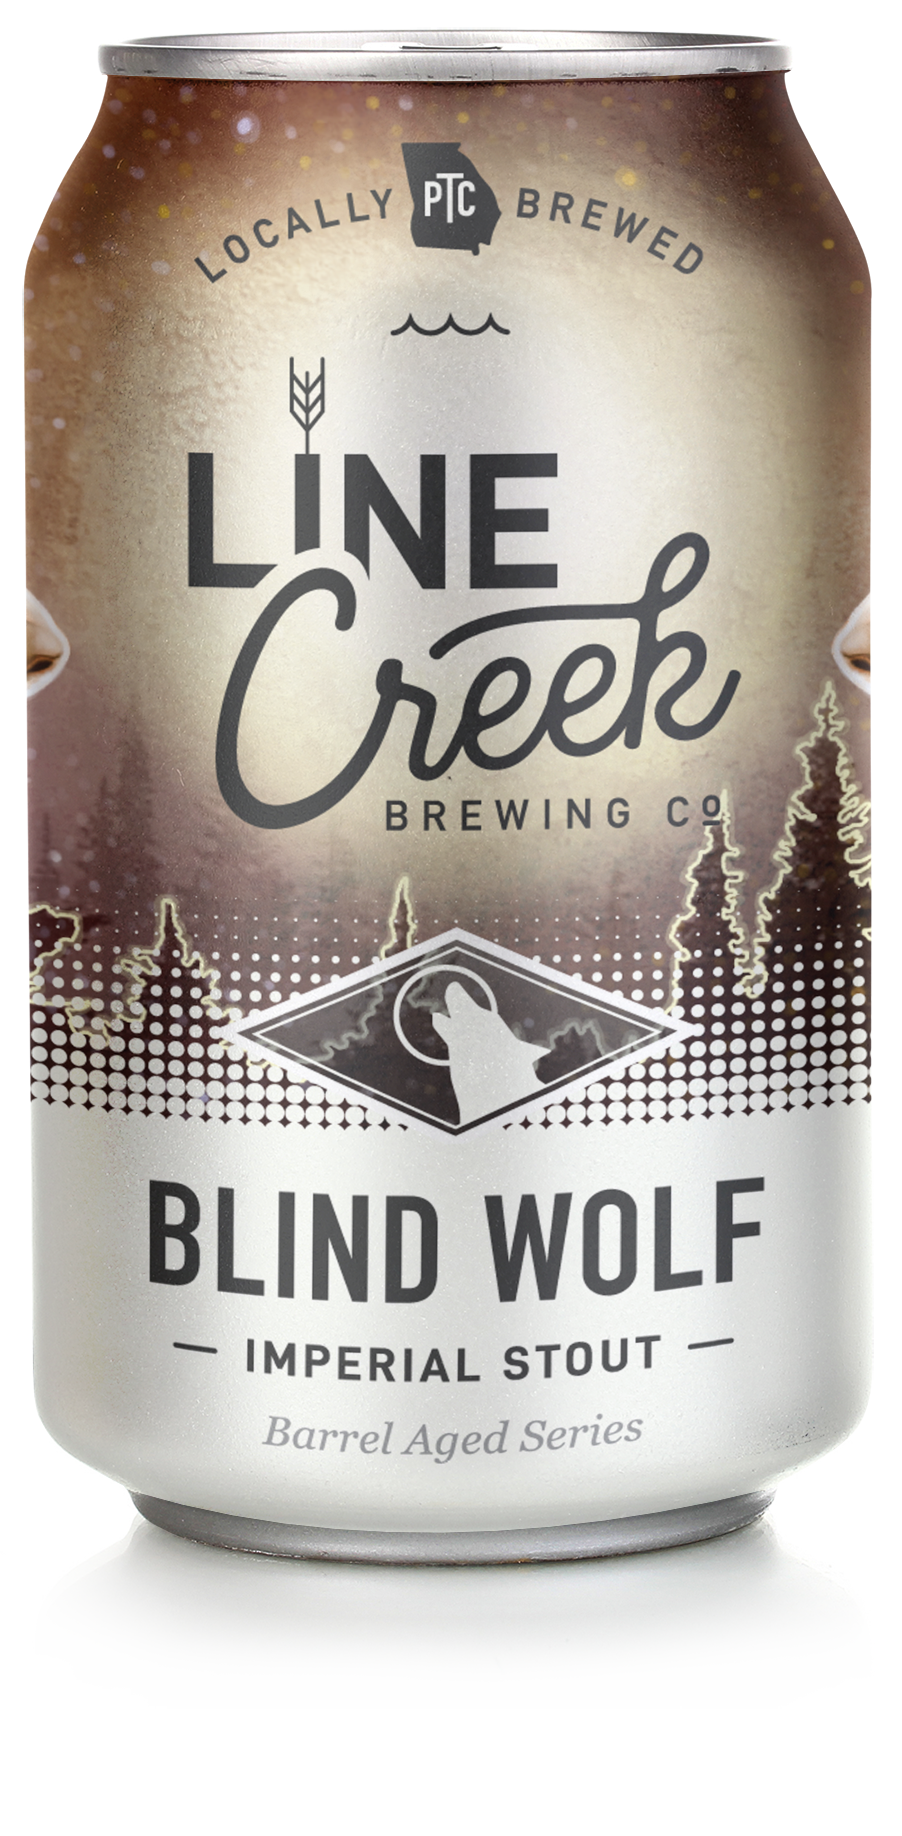 https://linecreekbrewing.com/wp-content/uploads/2019/03/Blindwolf_imperial.png